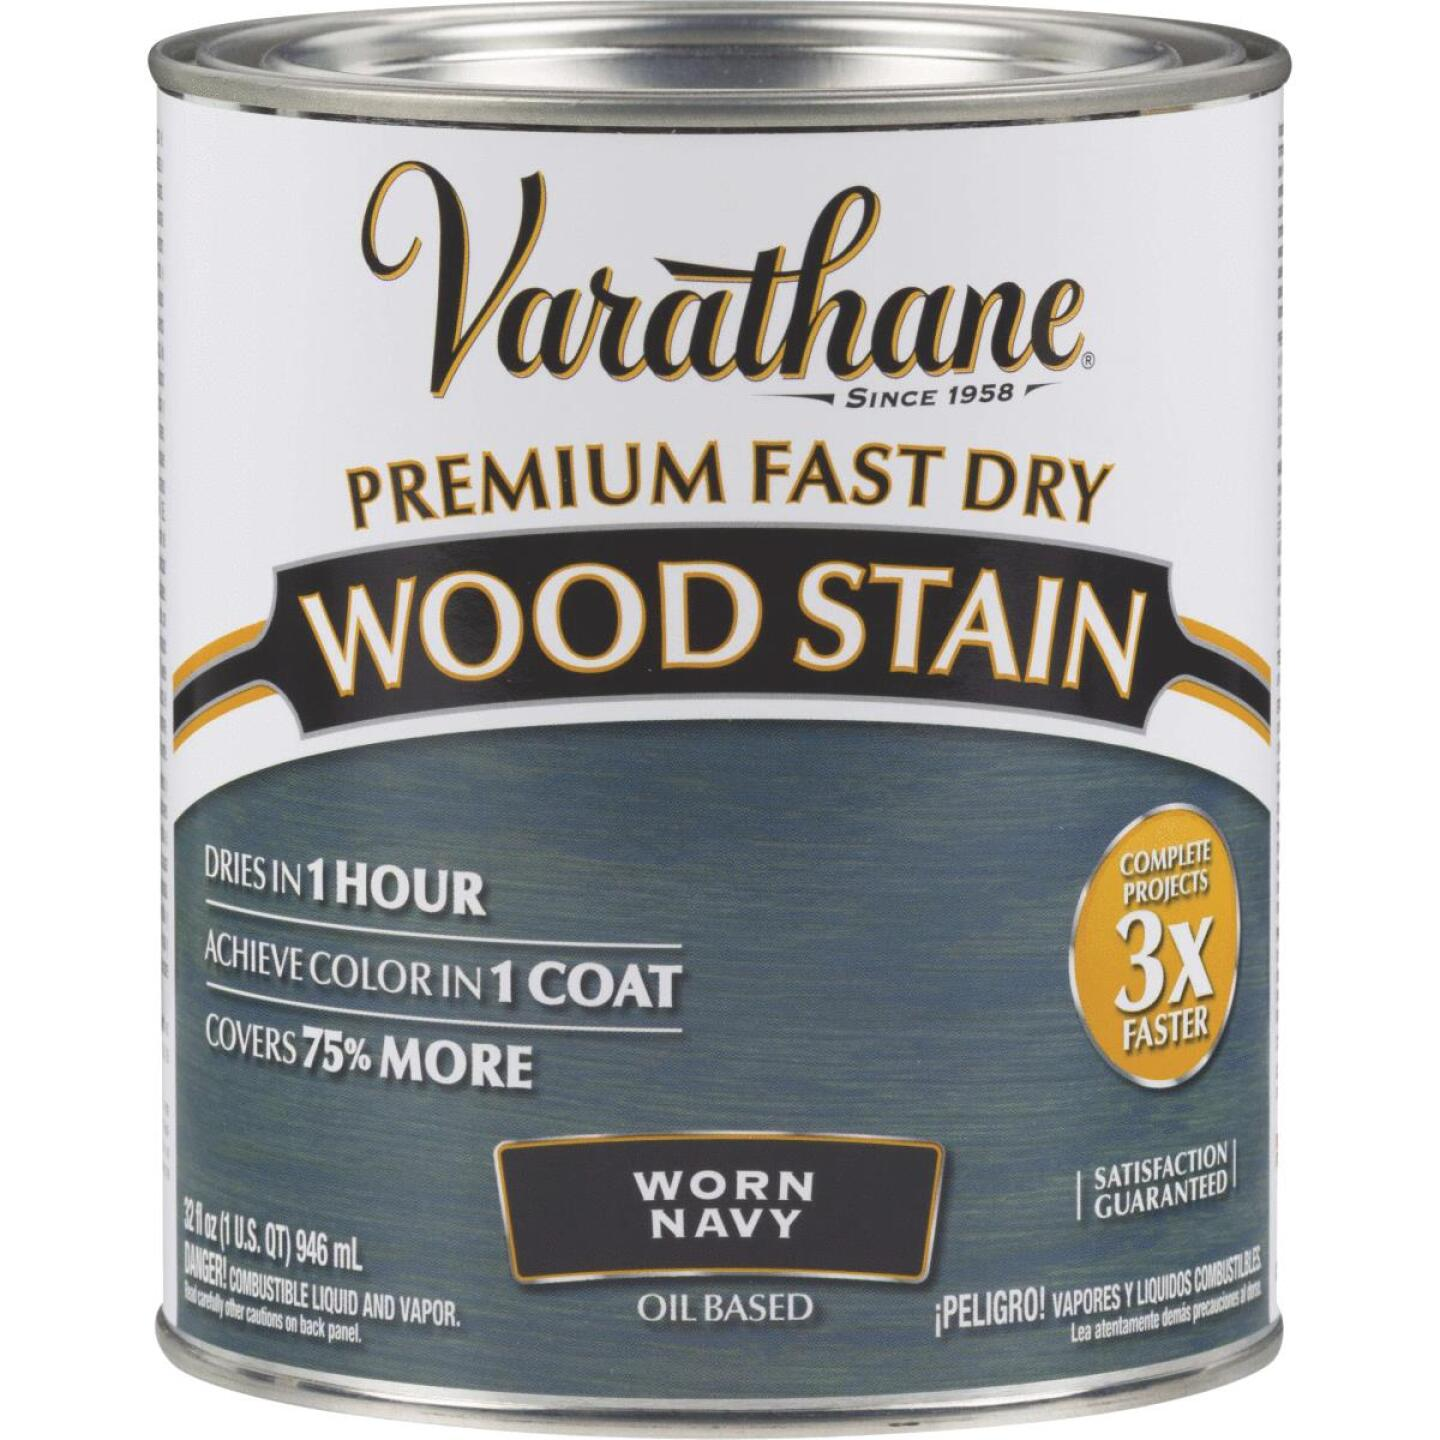 Varathane Fast Dry Worn Navy Urethane Modified Alkyd Interior Wood Stain, 1 Qt. Image 1